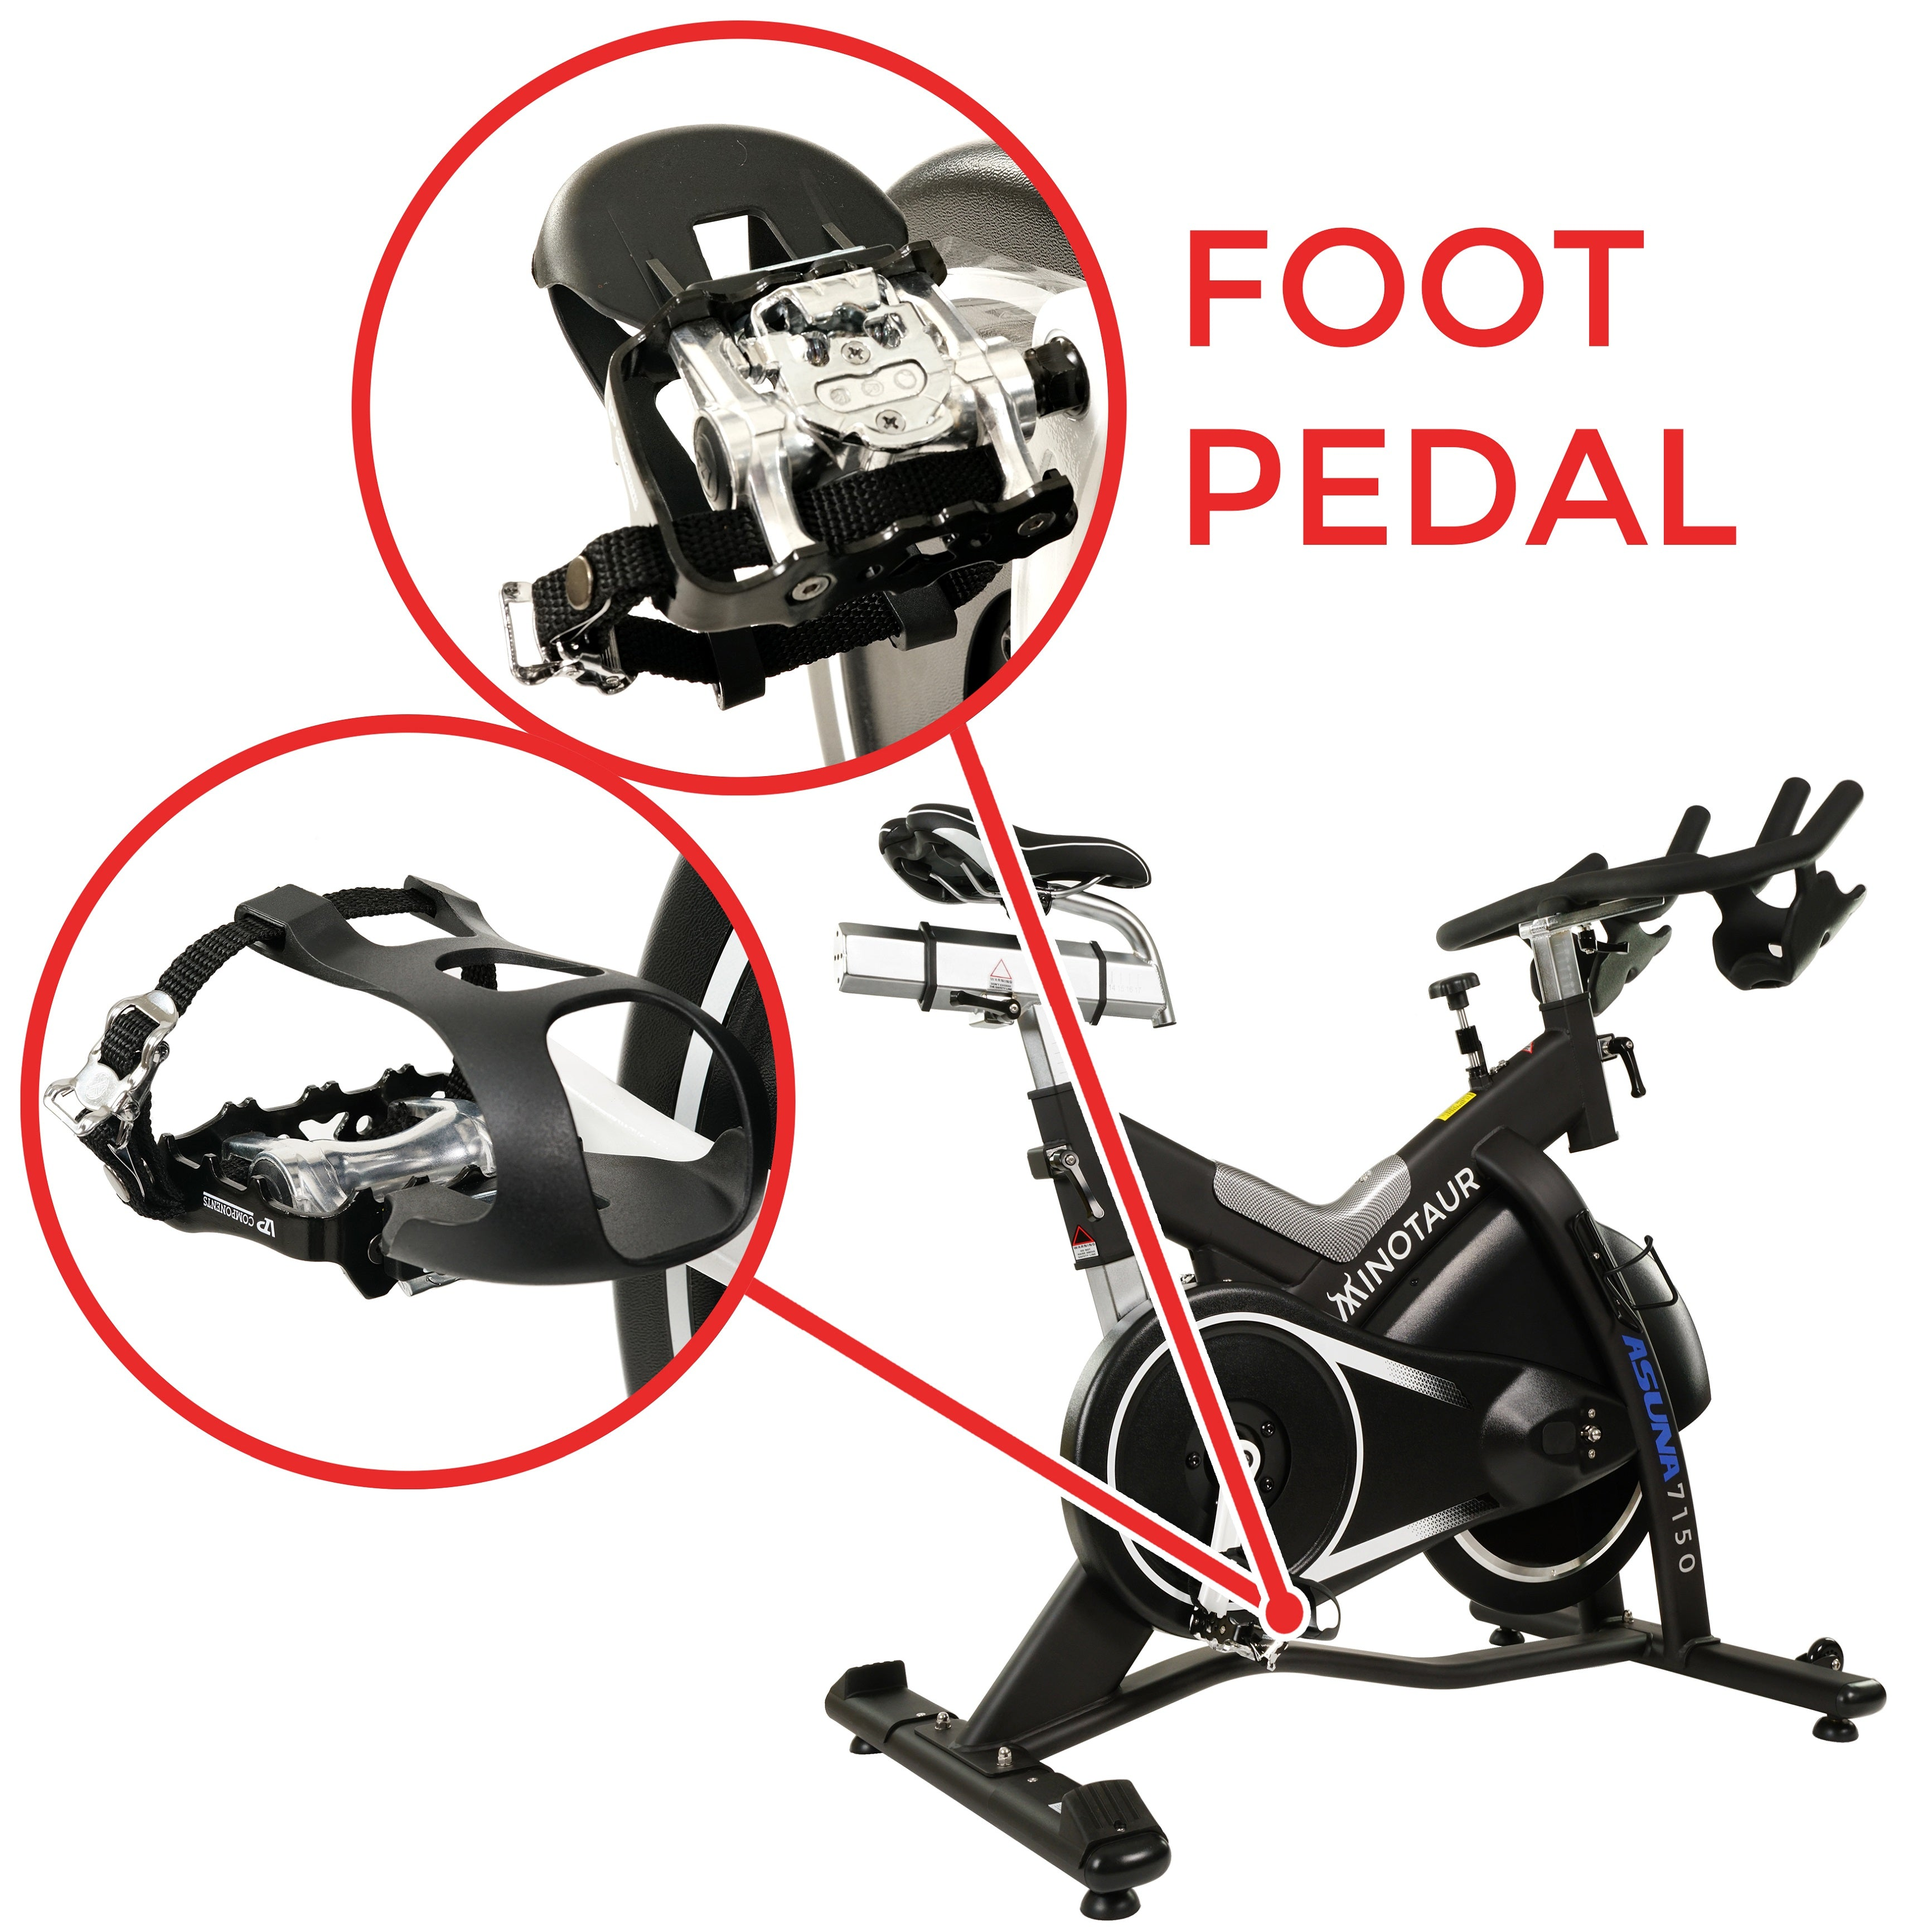 7150_FootPedal_CallOut.jpg